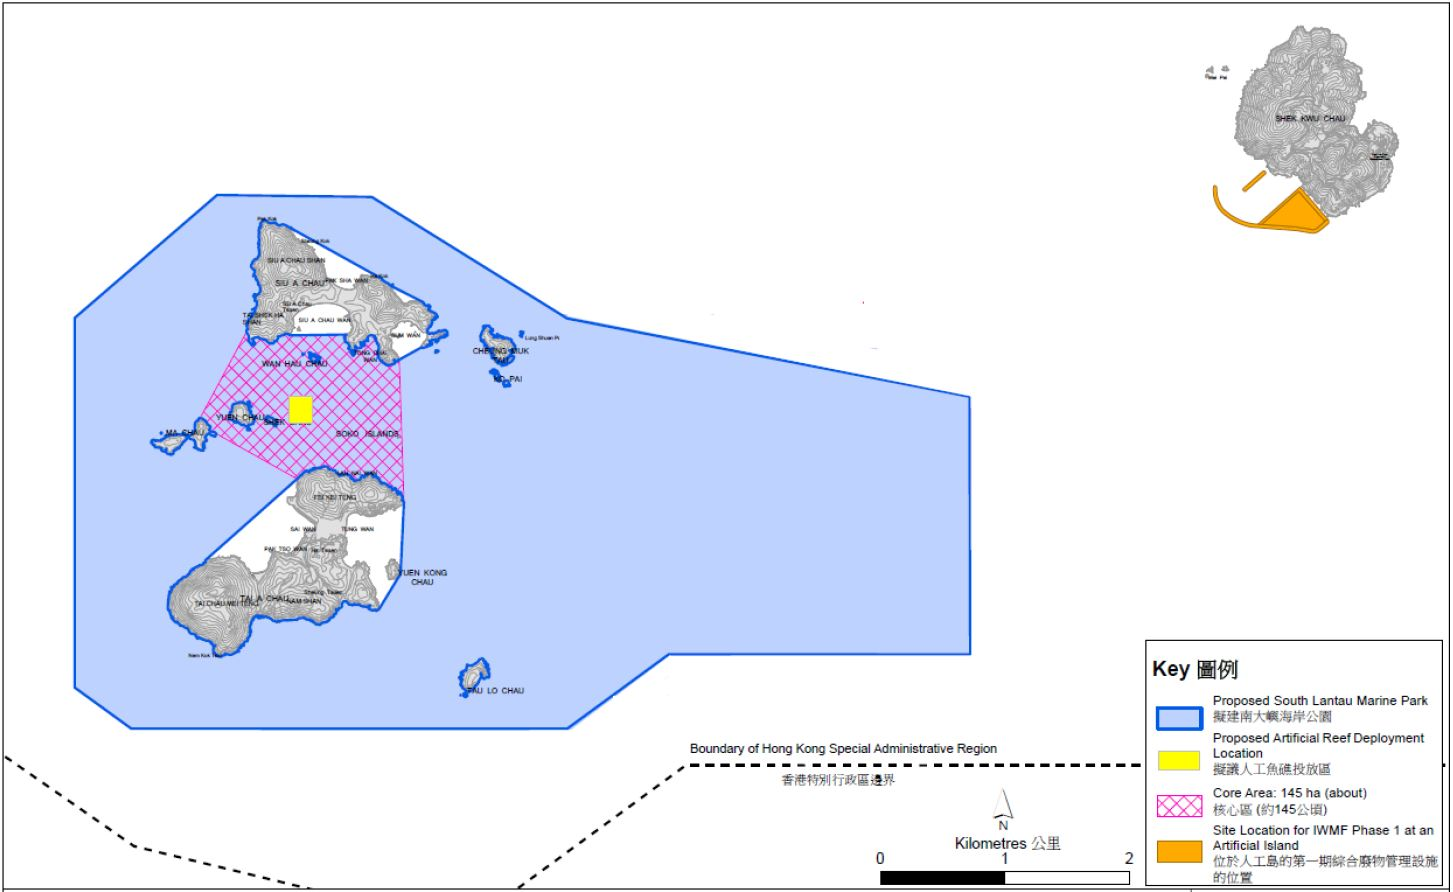 The proposed location for artificial reefs development